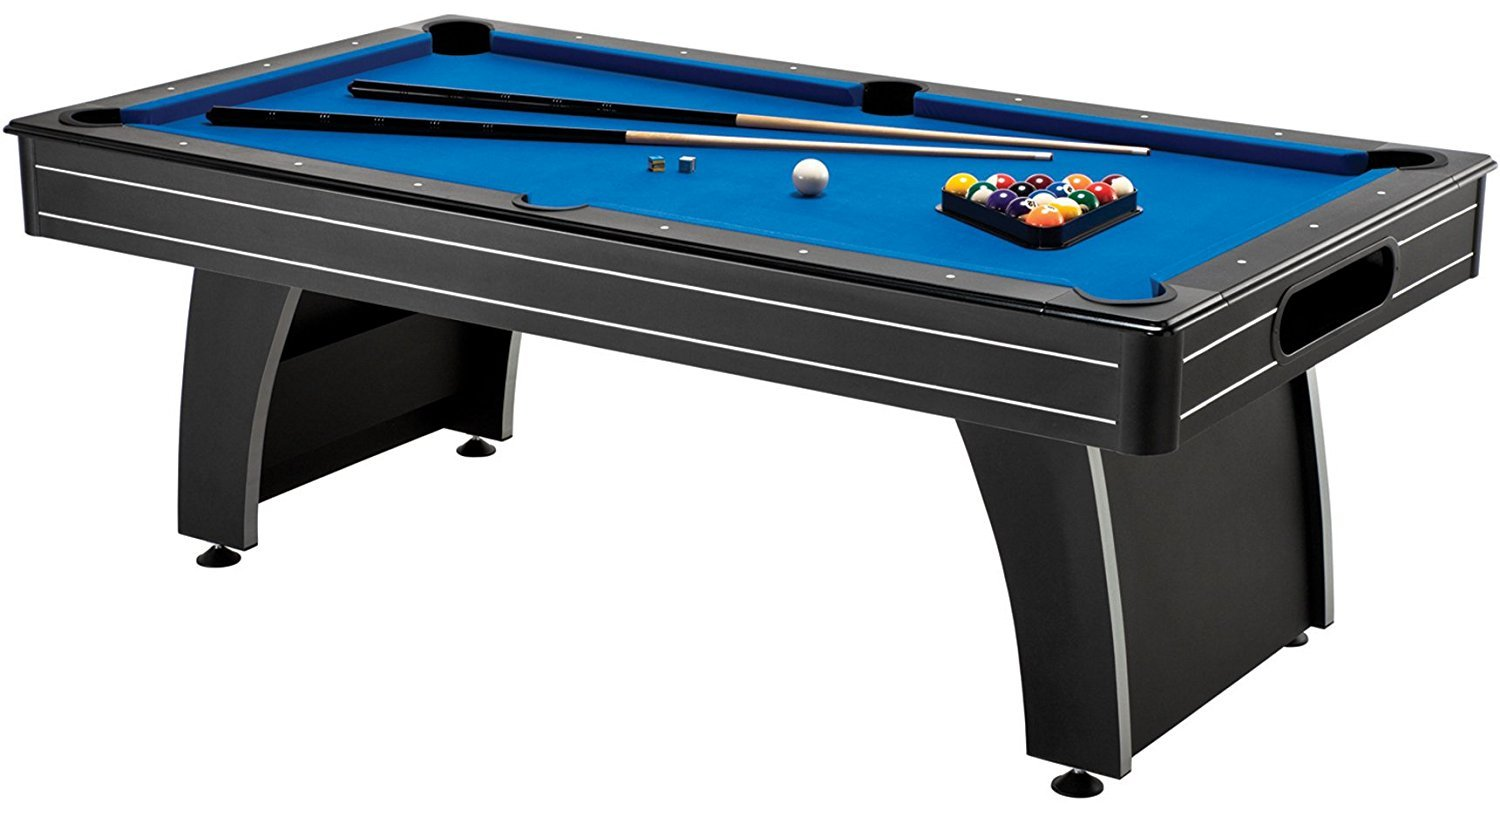 Pool Table Black Friday Deals - Carmelli pool table